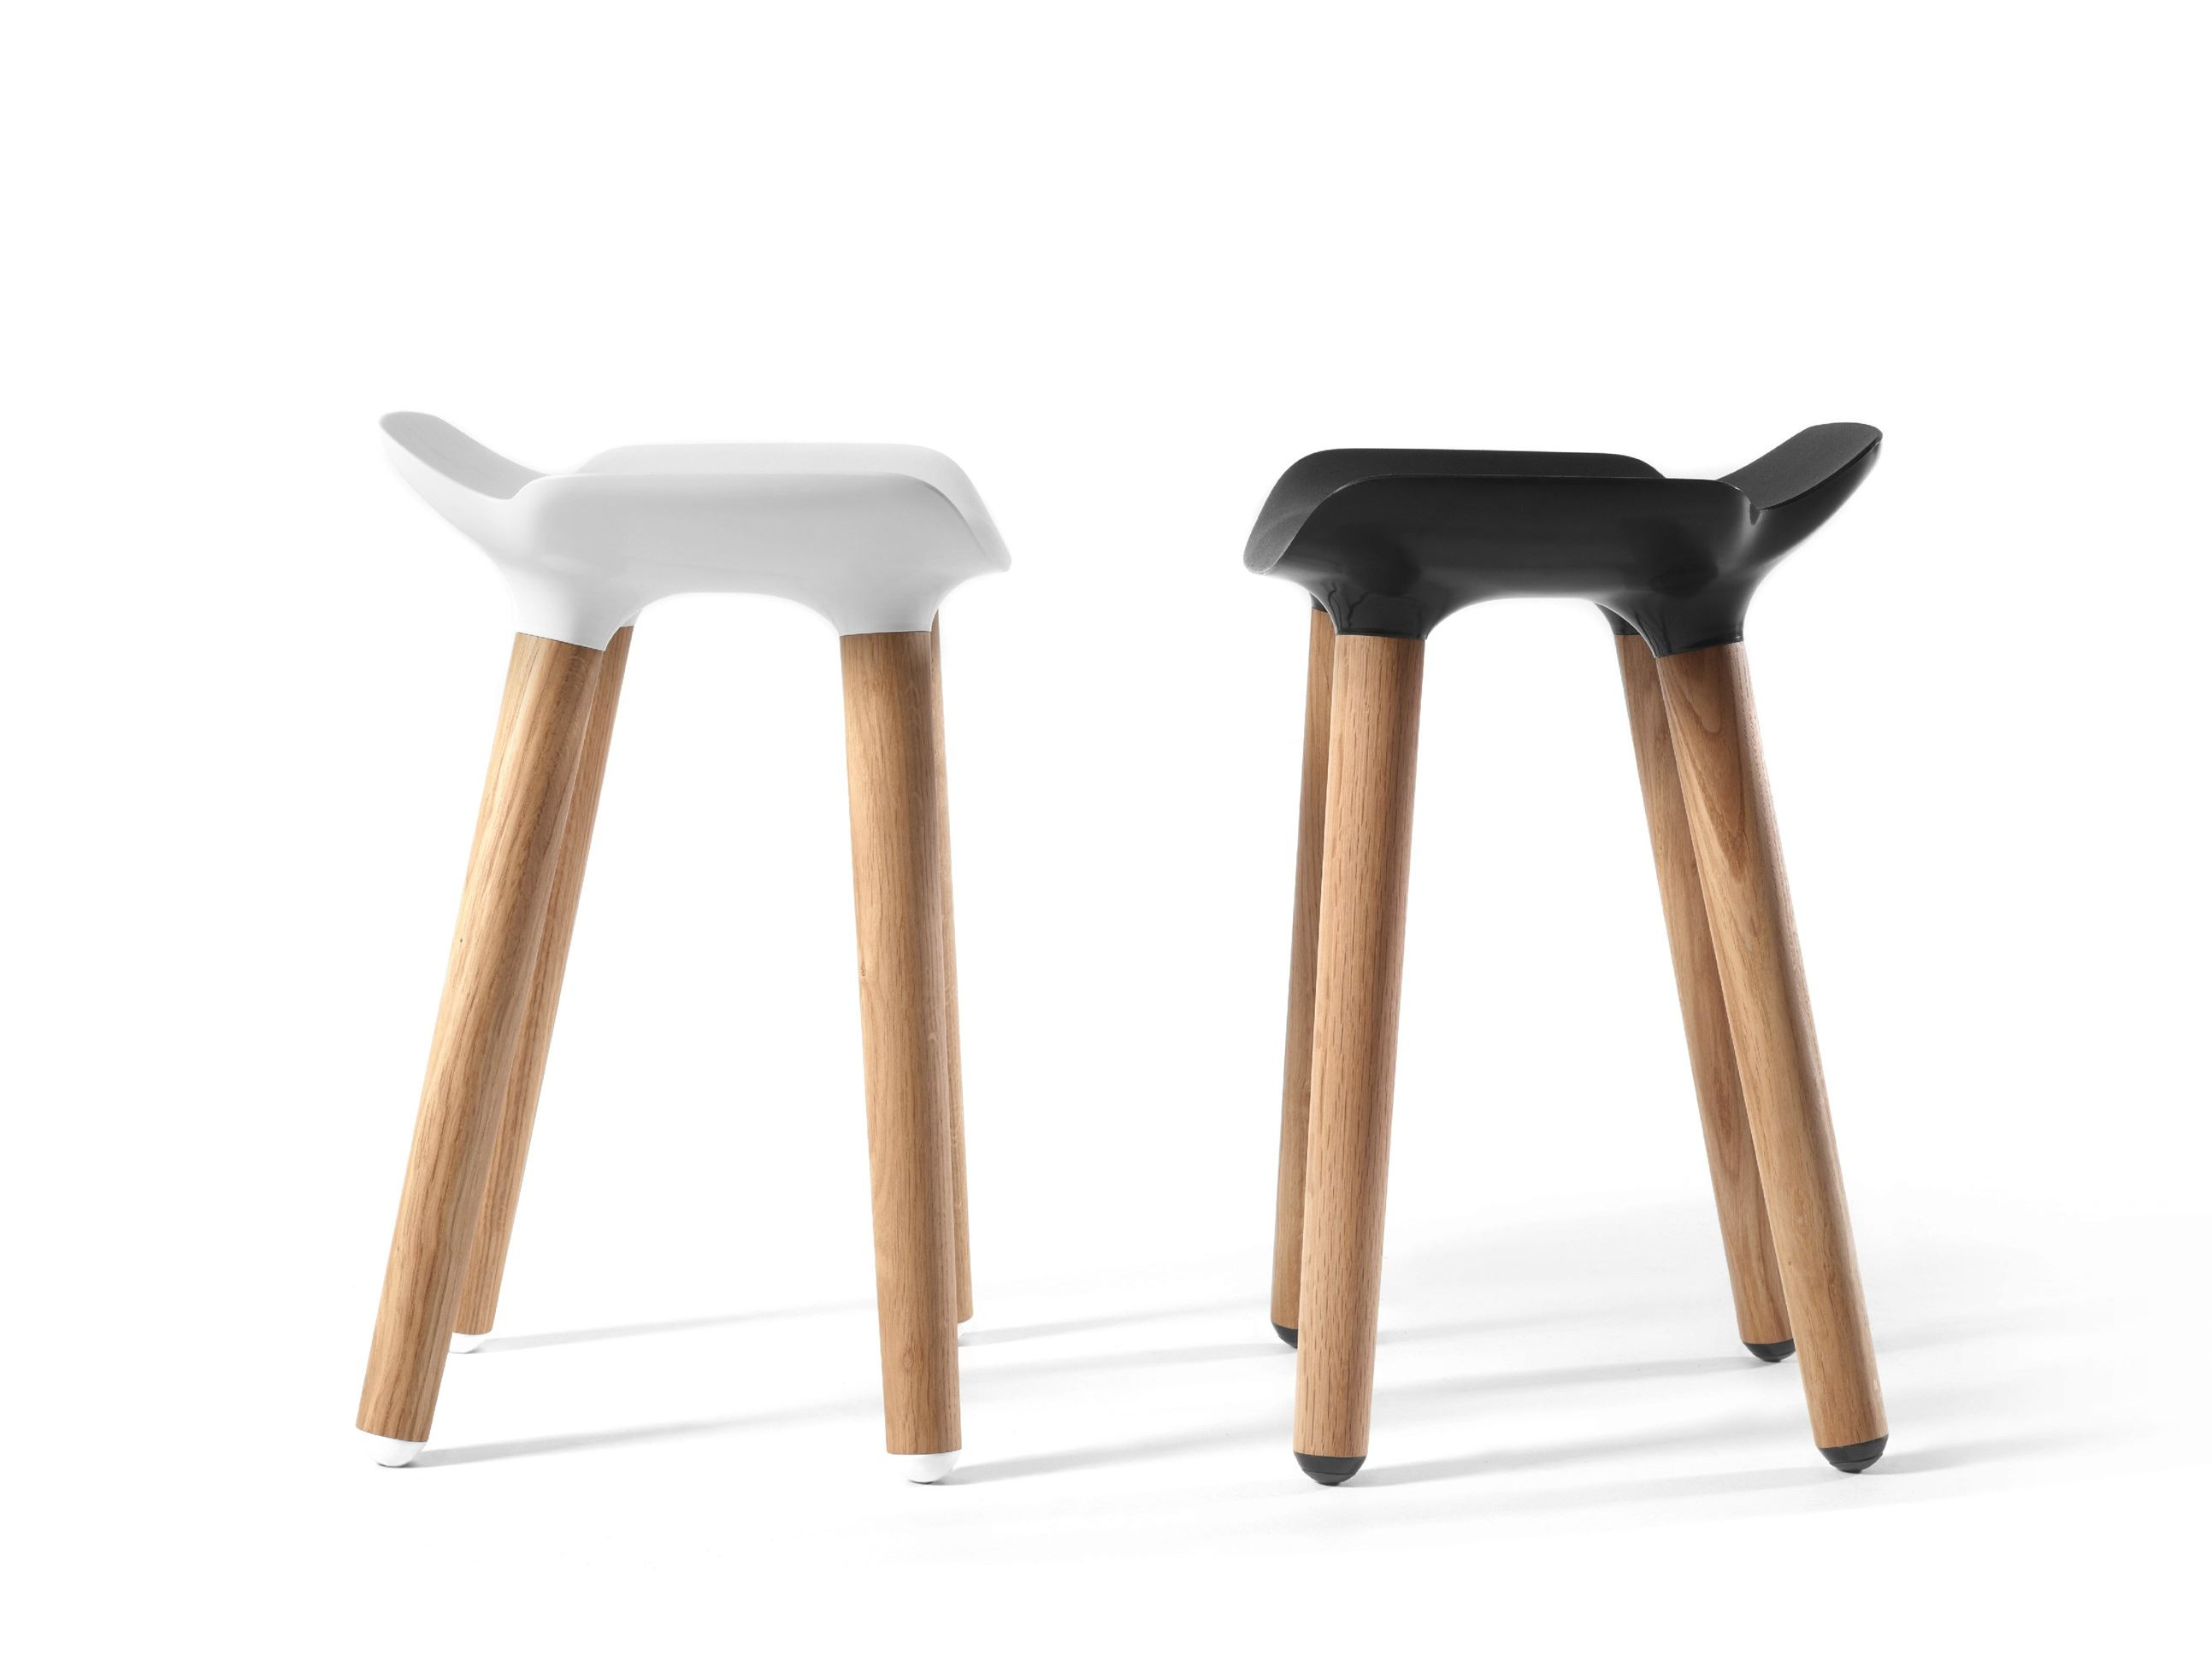 Low wooden stool pilot stool by quinze milan design - Banquetas para cocina ...